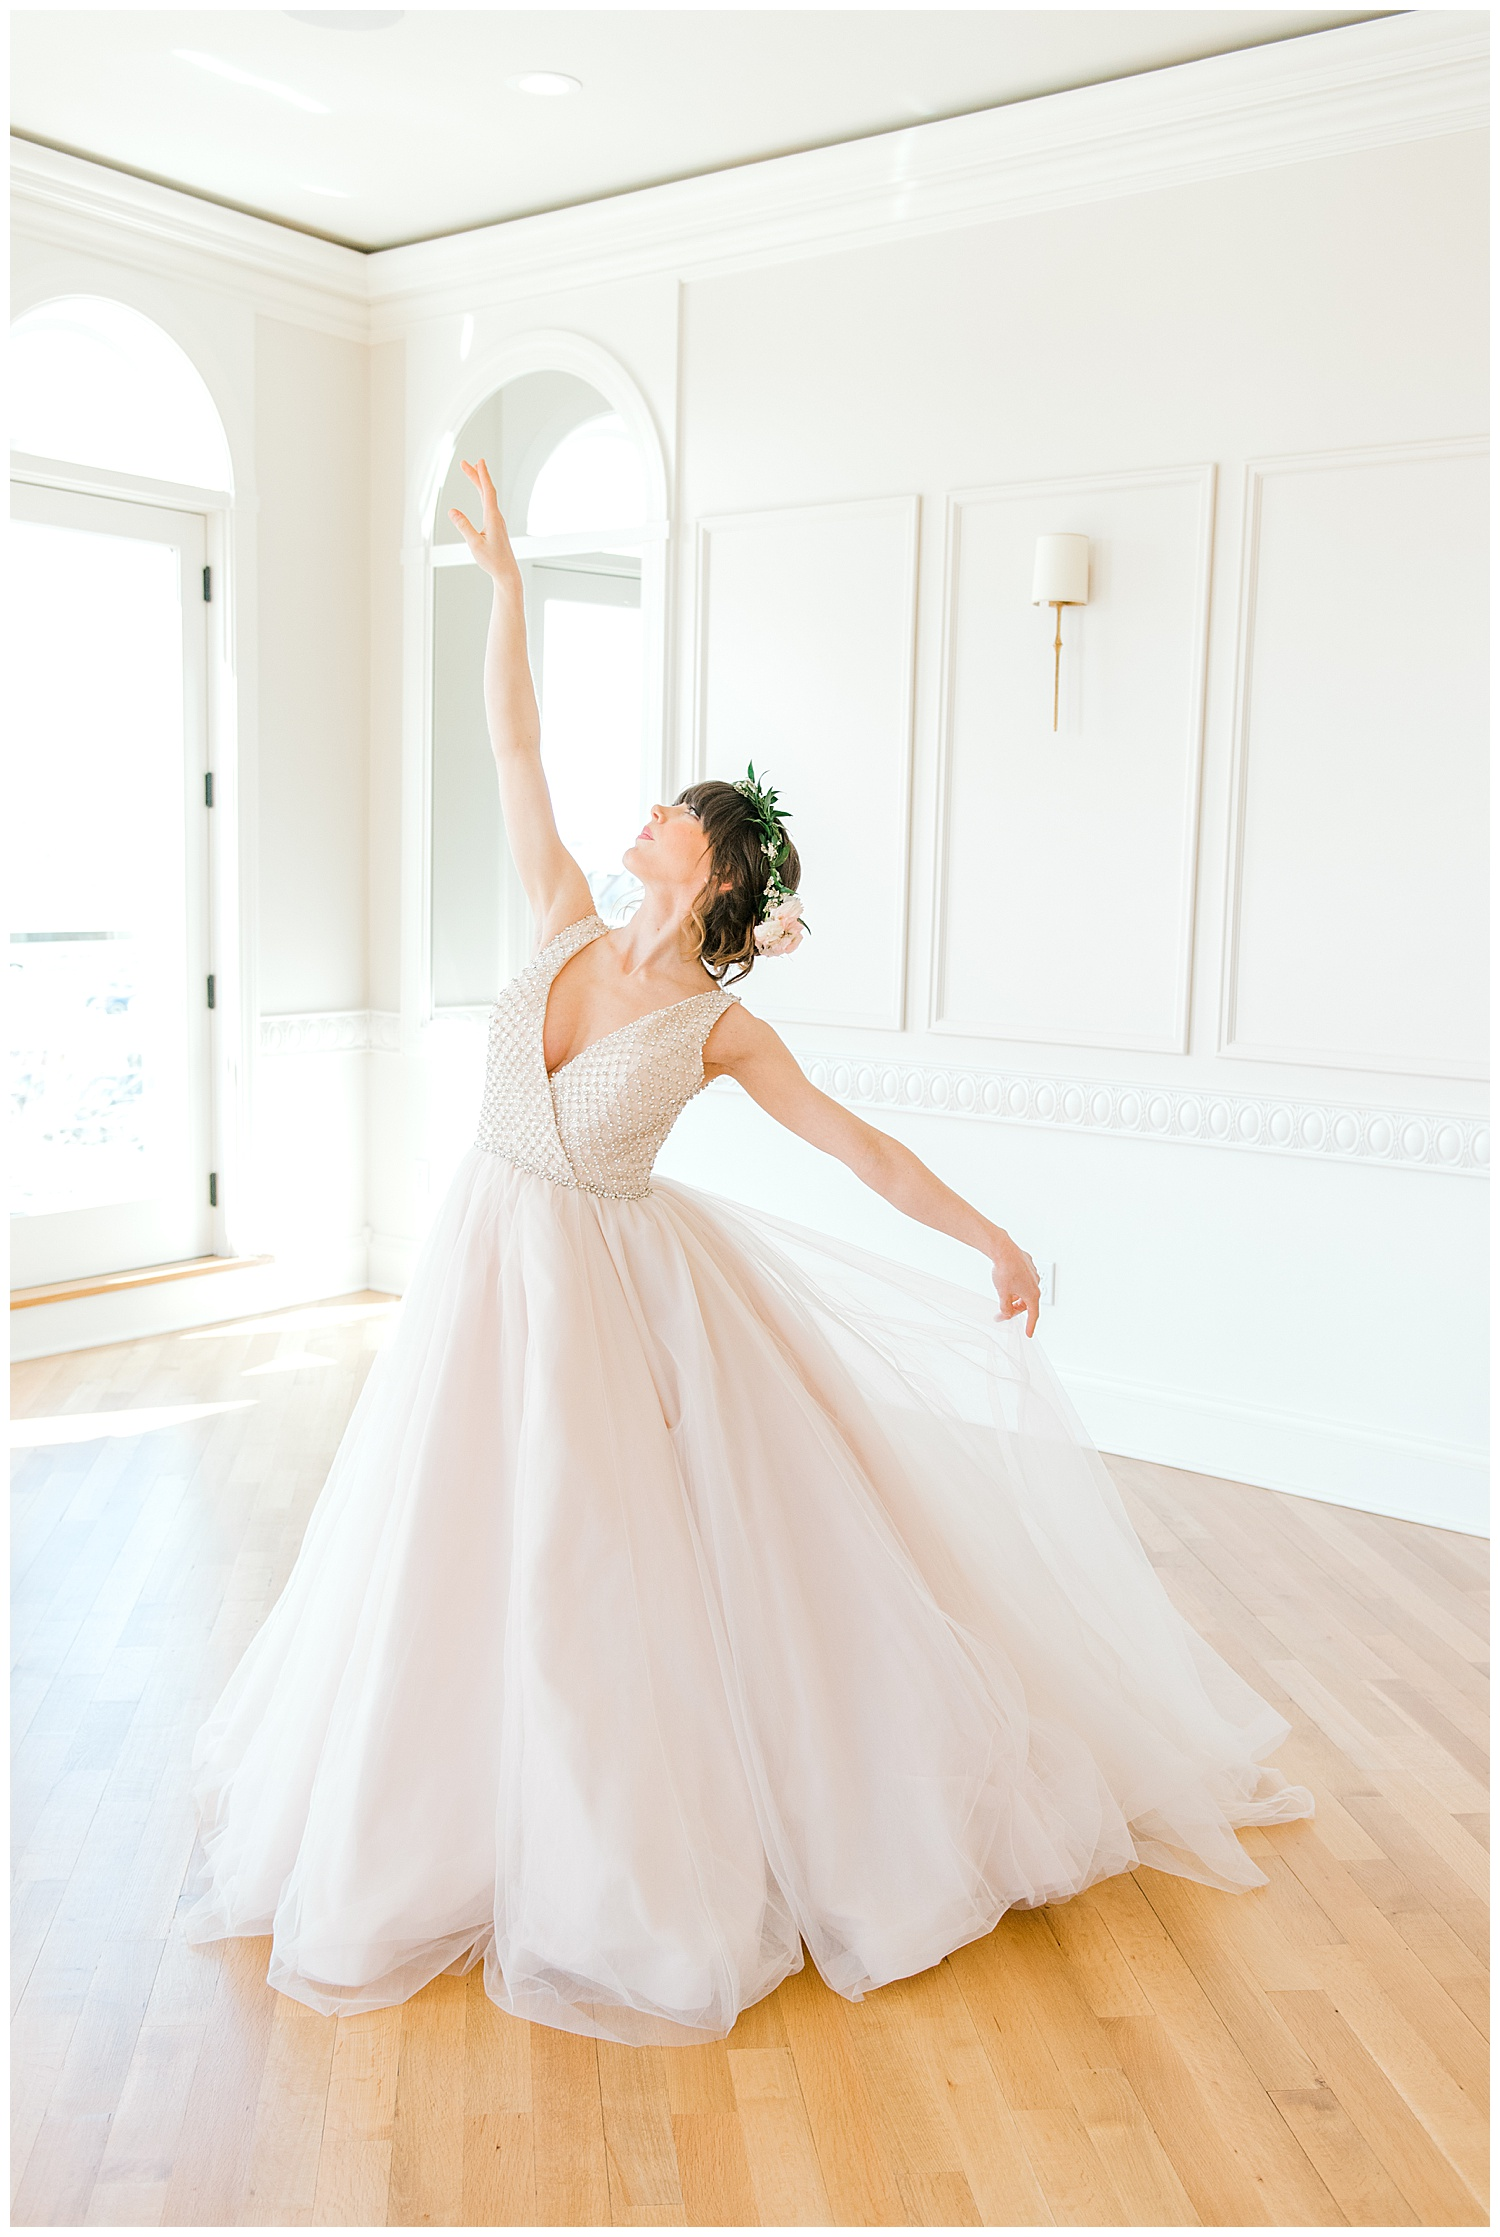 blush-ballerina-wedding-photography-newport-rhode-island-48.jpg